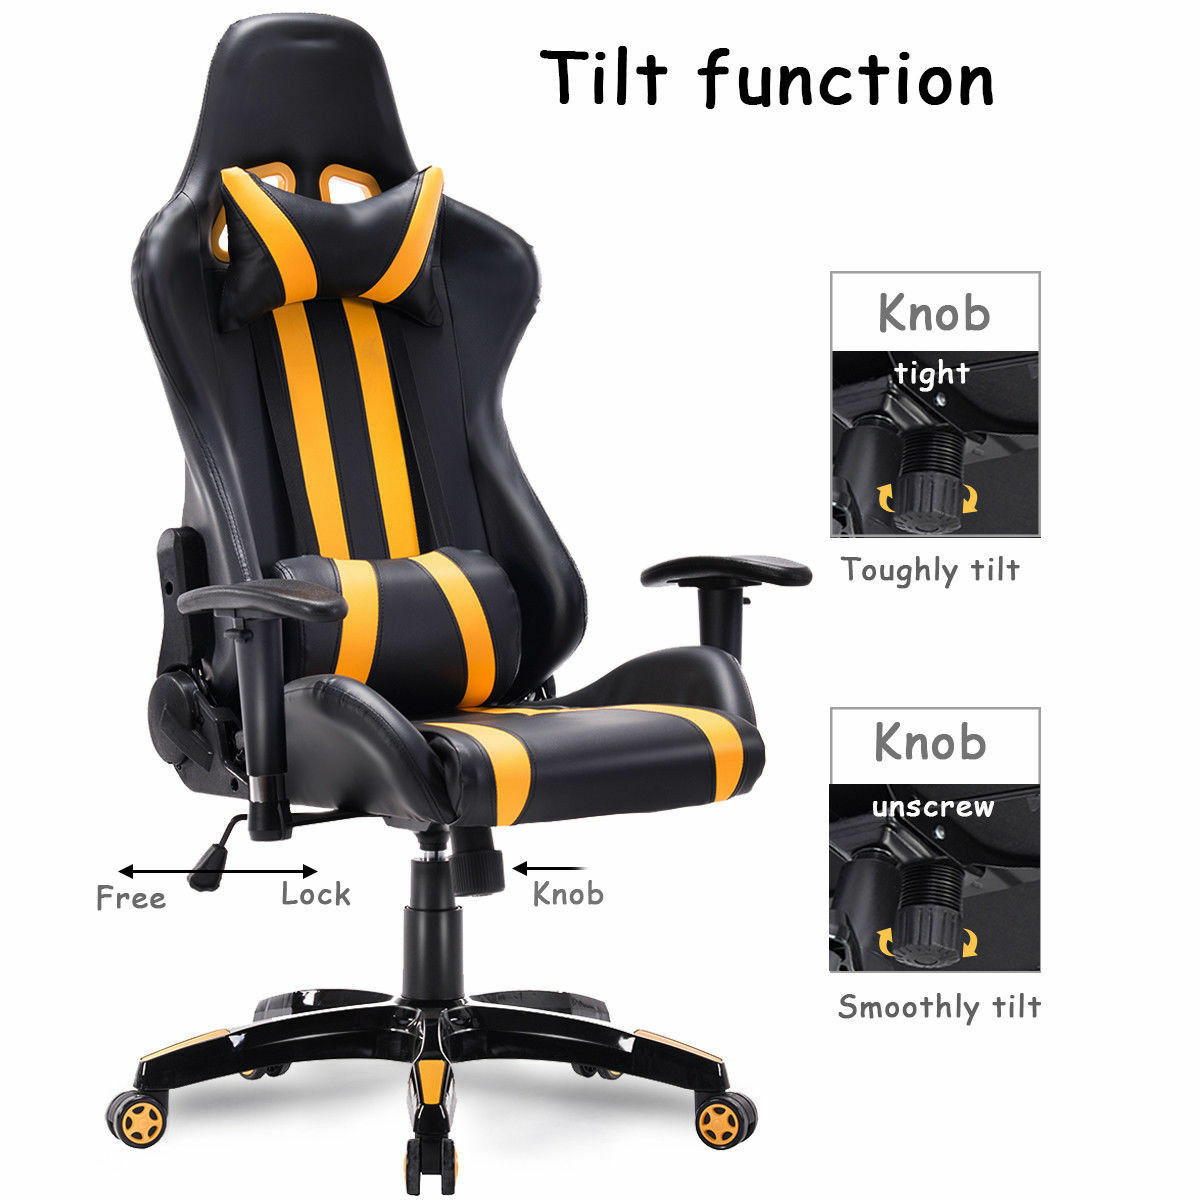 Stupendous Bumble Bee Racer Executive Gaming Chair Squirreltailoven Fun Painted Chair Ideas Images Squirreltailovenorg